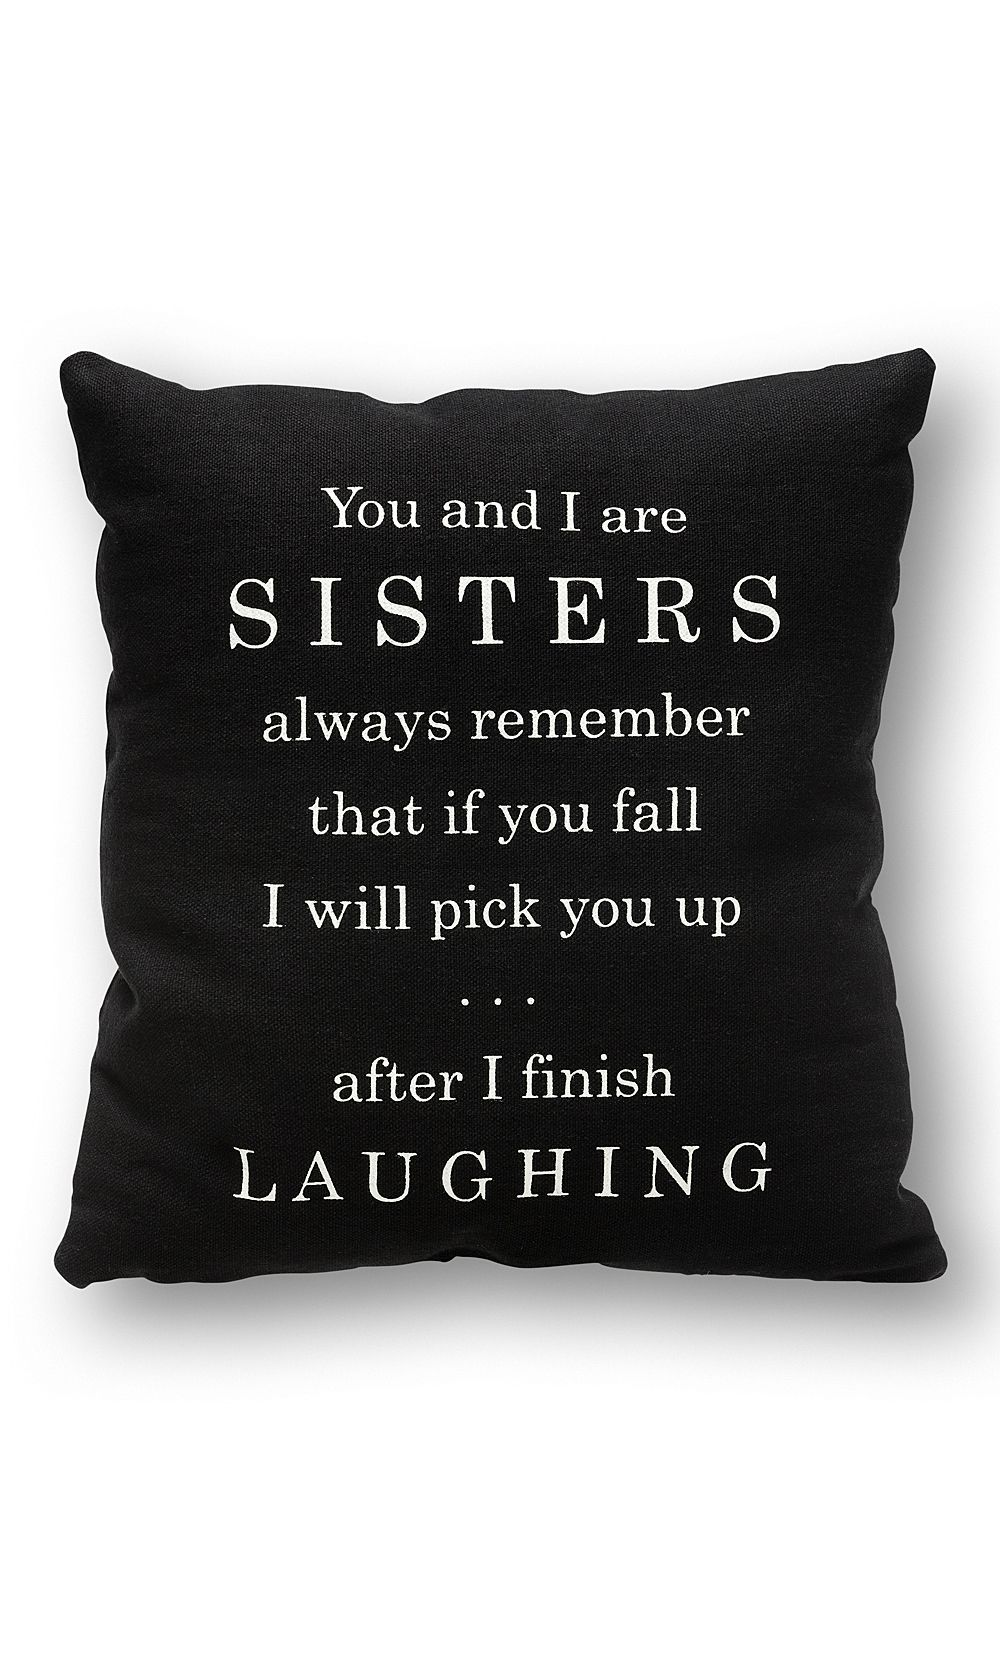 sisters pillow   love   pinterest   pillows, gift and stuffing